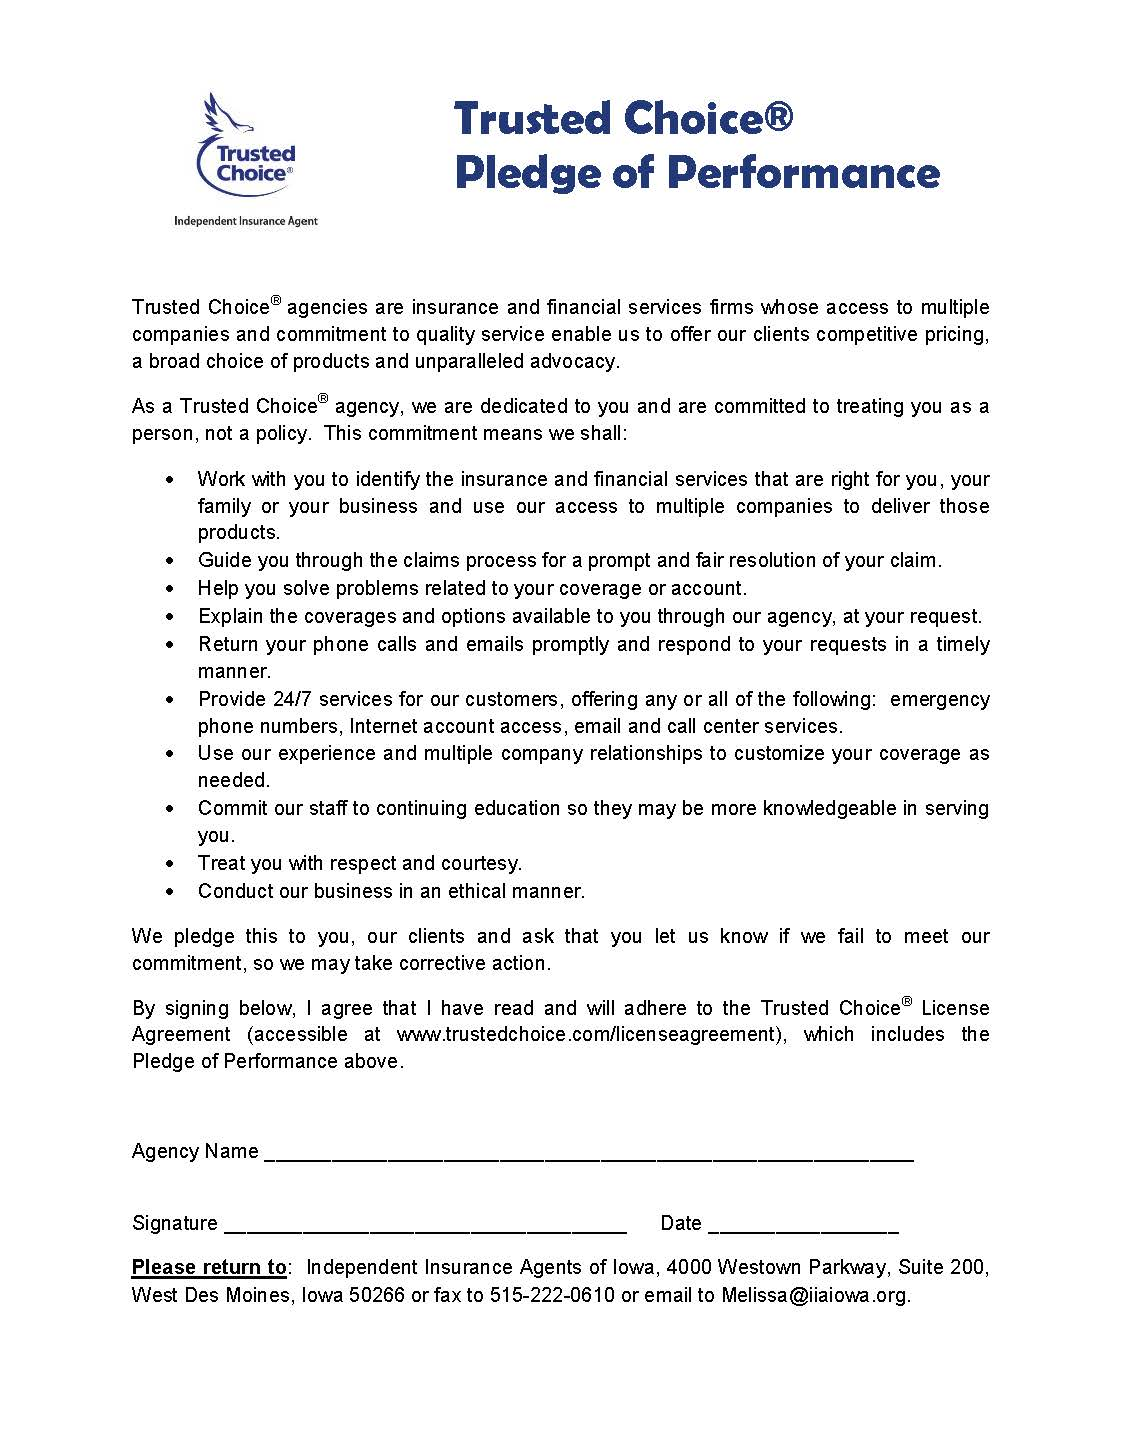 Information & Membership - Trusted Choice Pledge of Performance